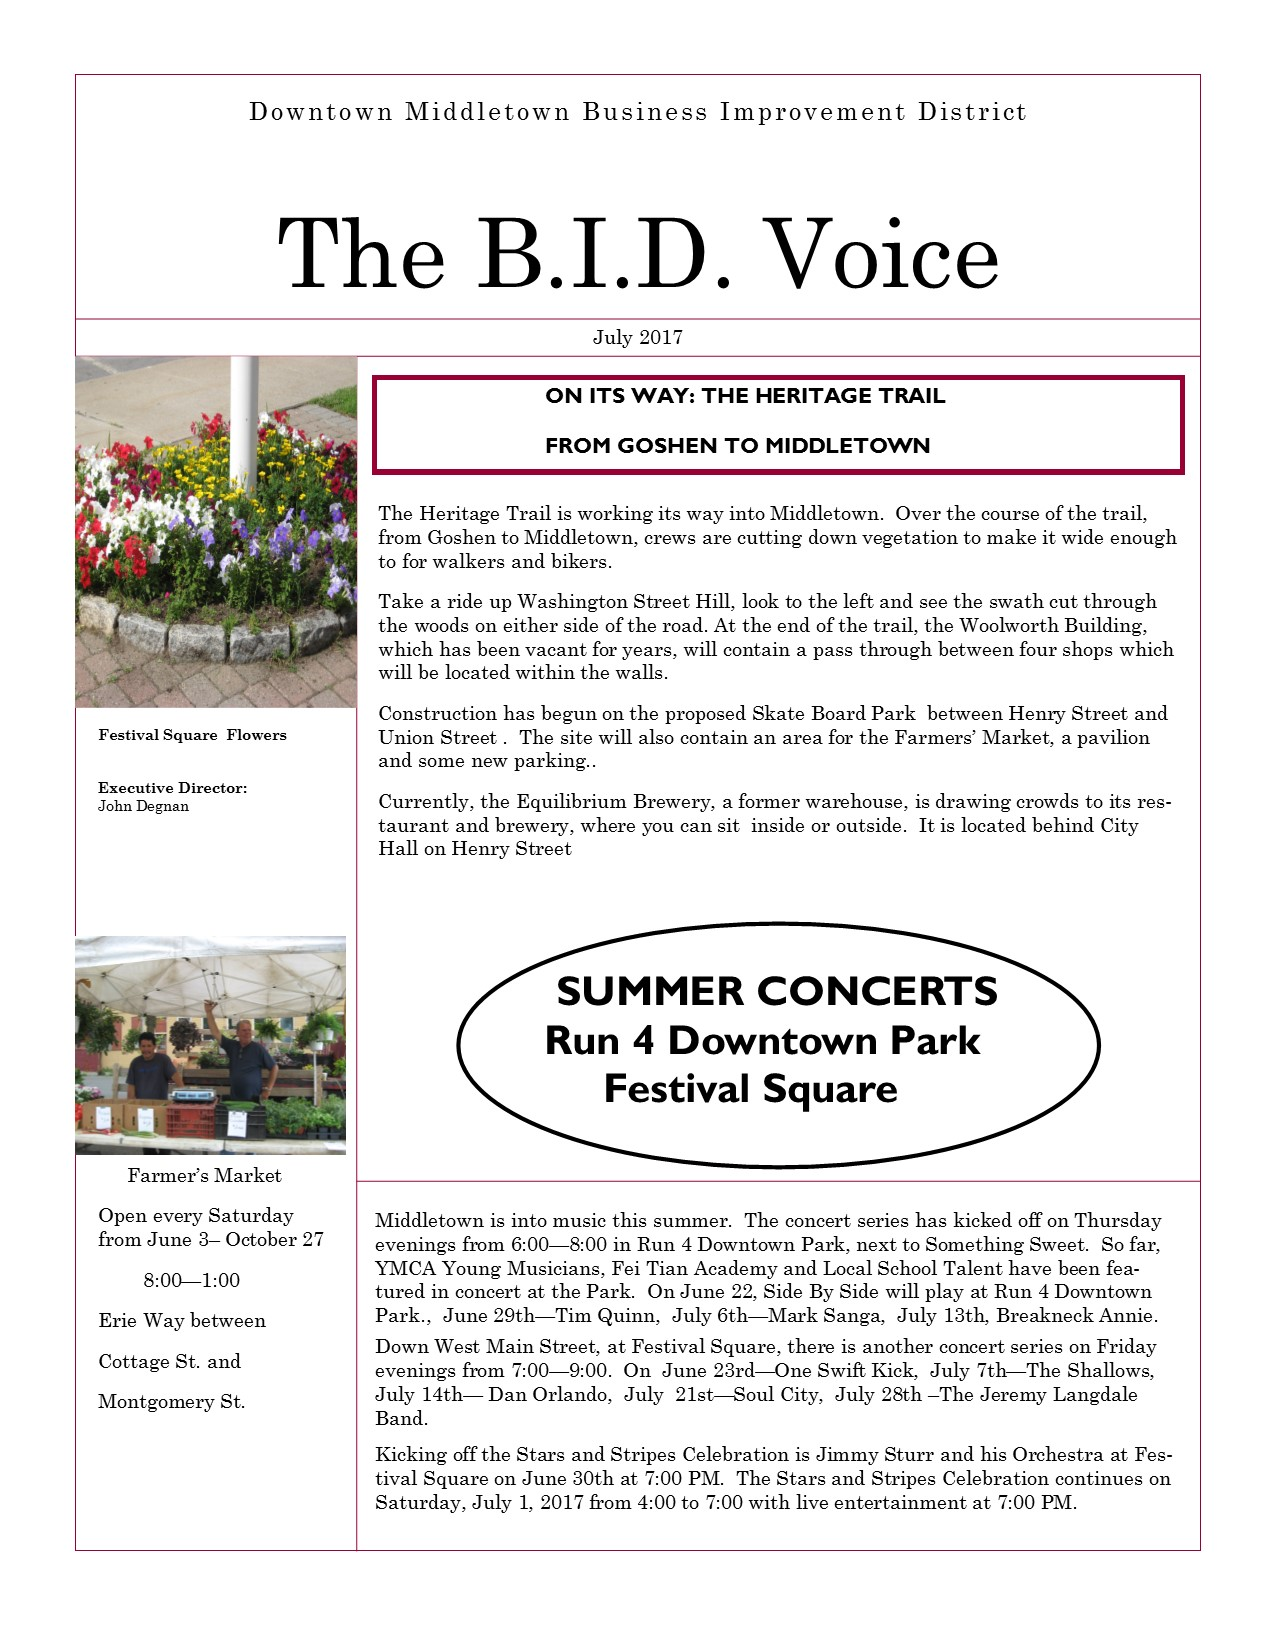 New BID Voice. July 1 2017